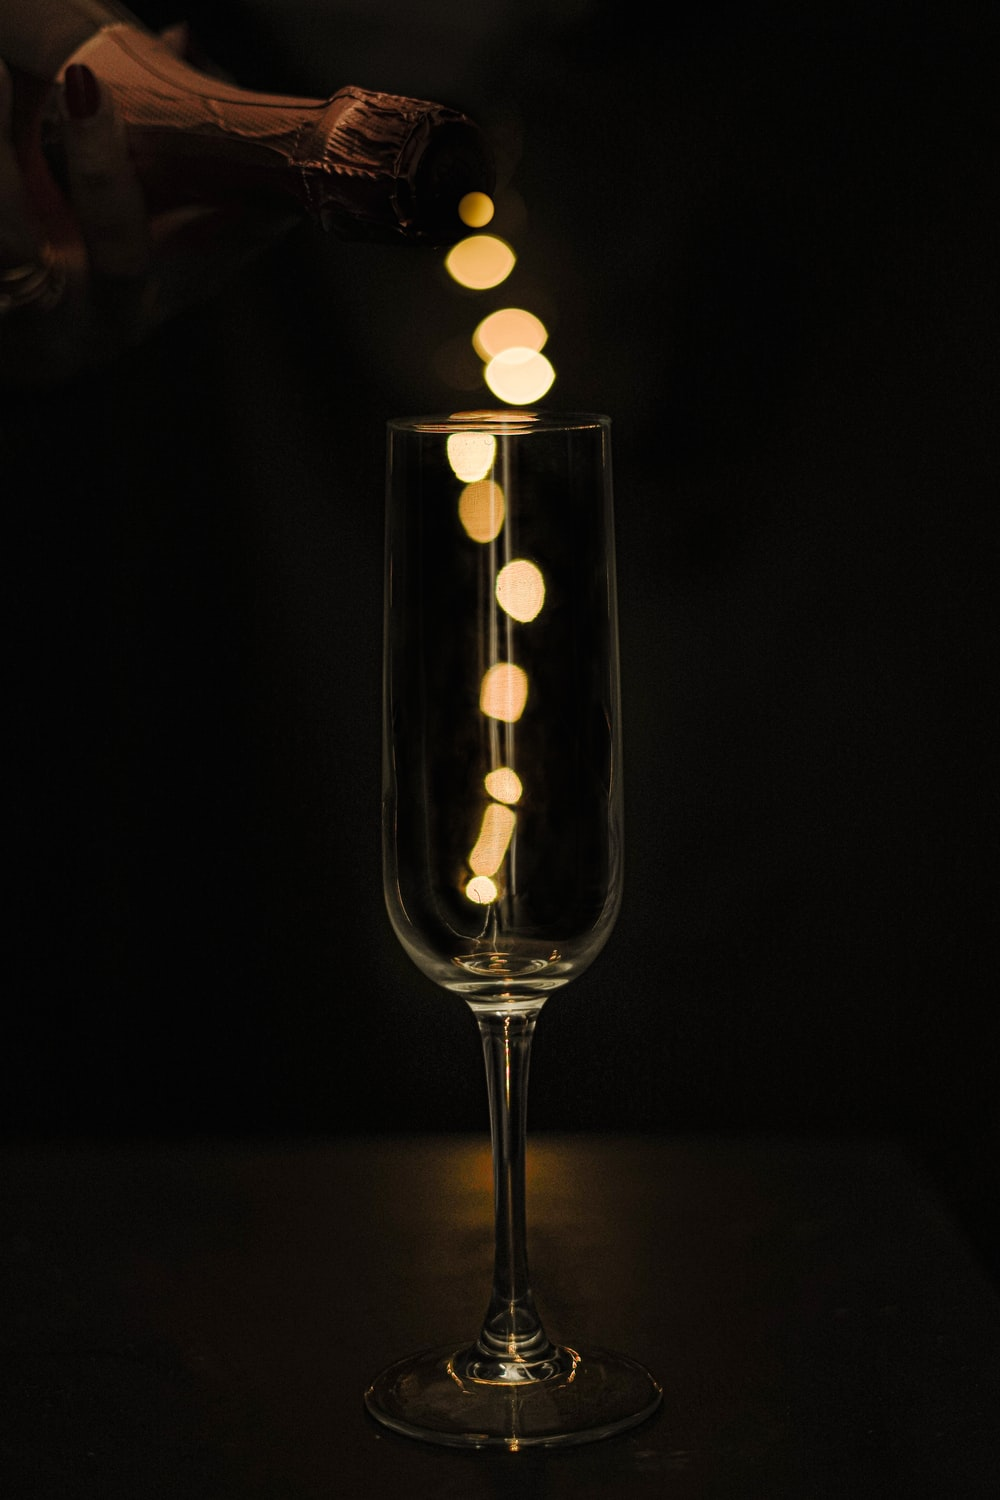 clear wine glass with white light